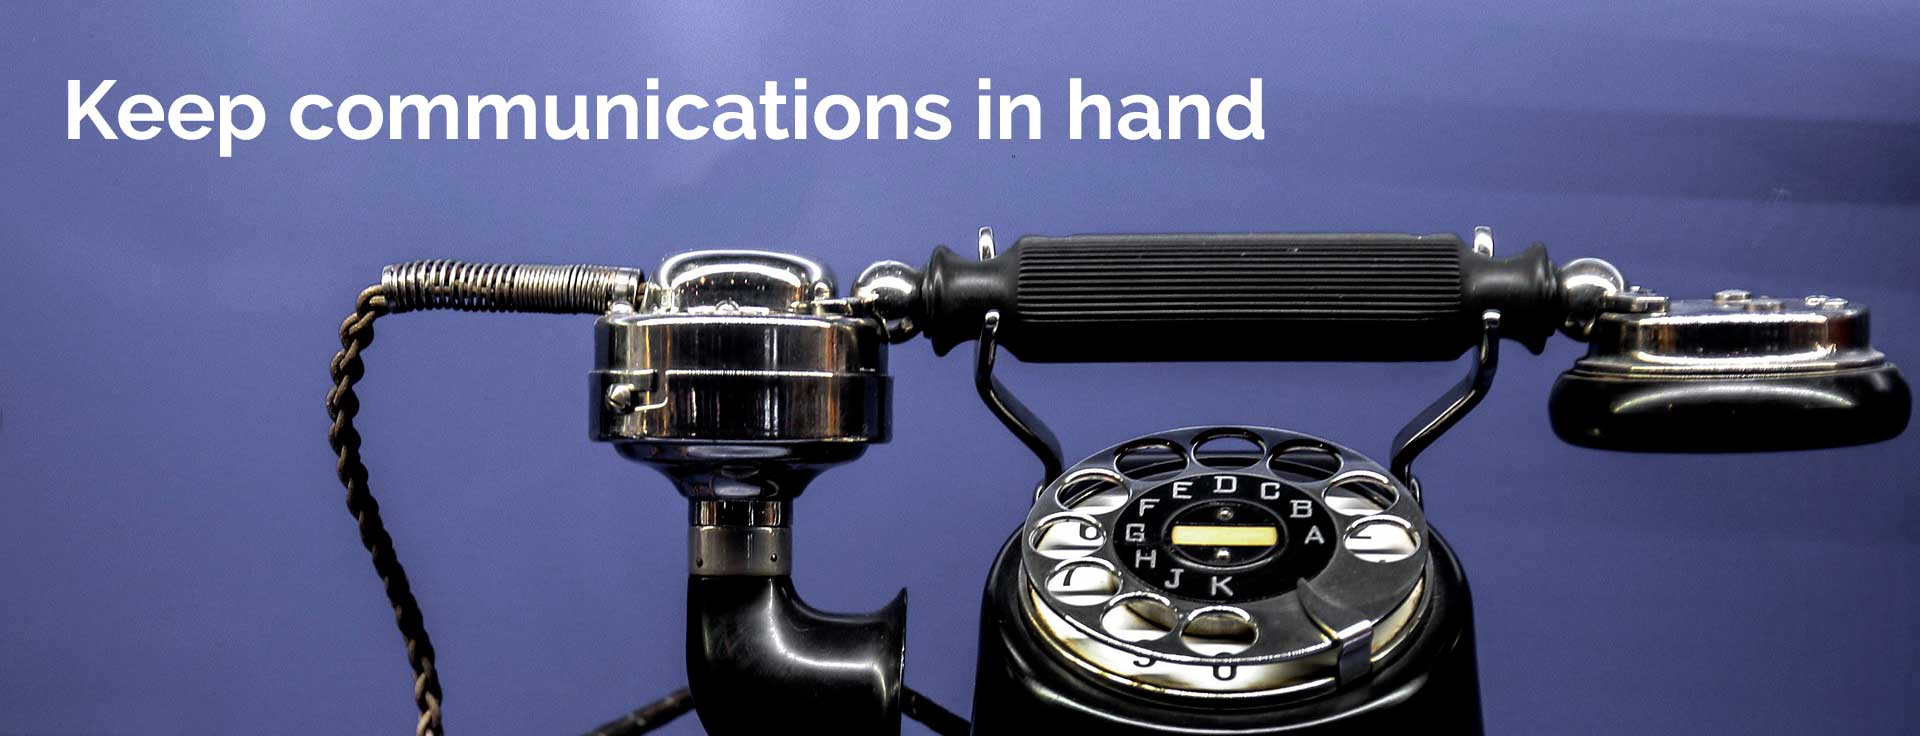 Keep-communications-in-hand